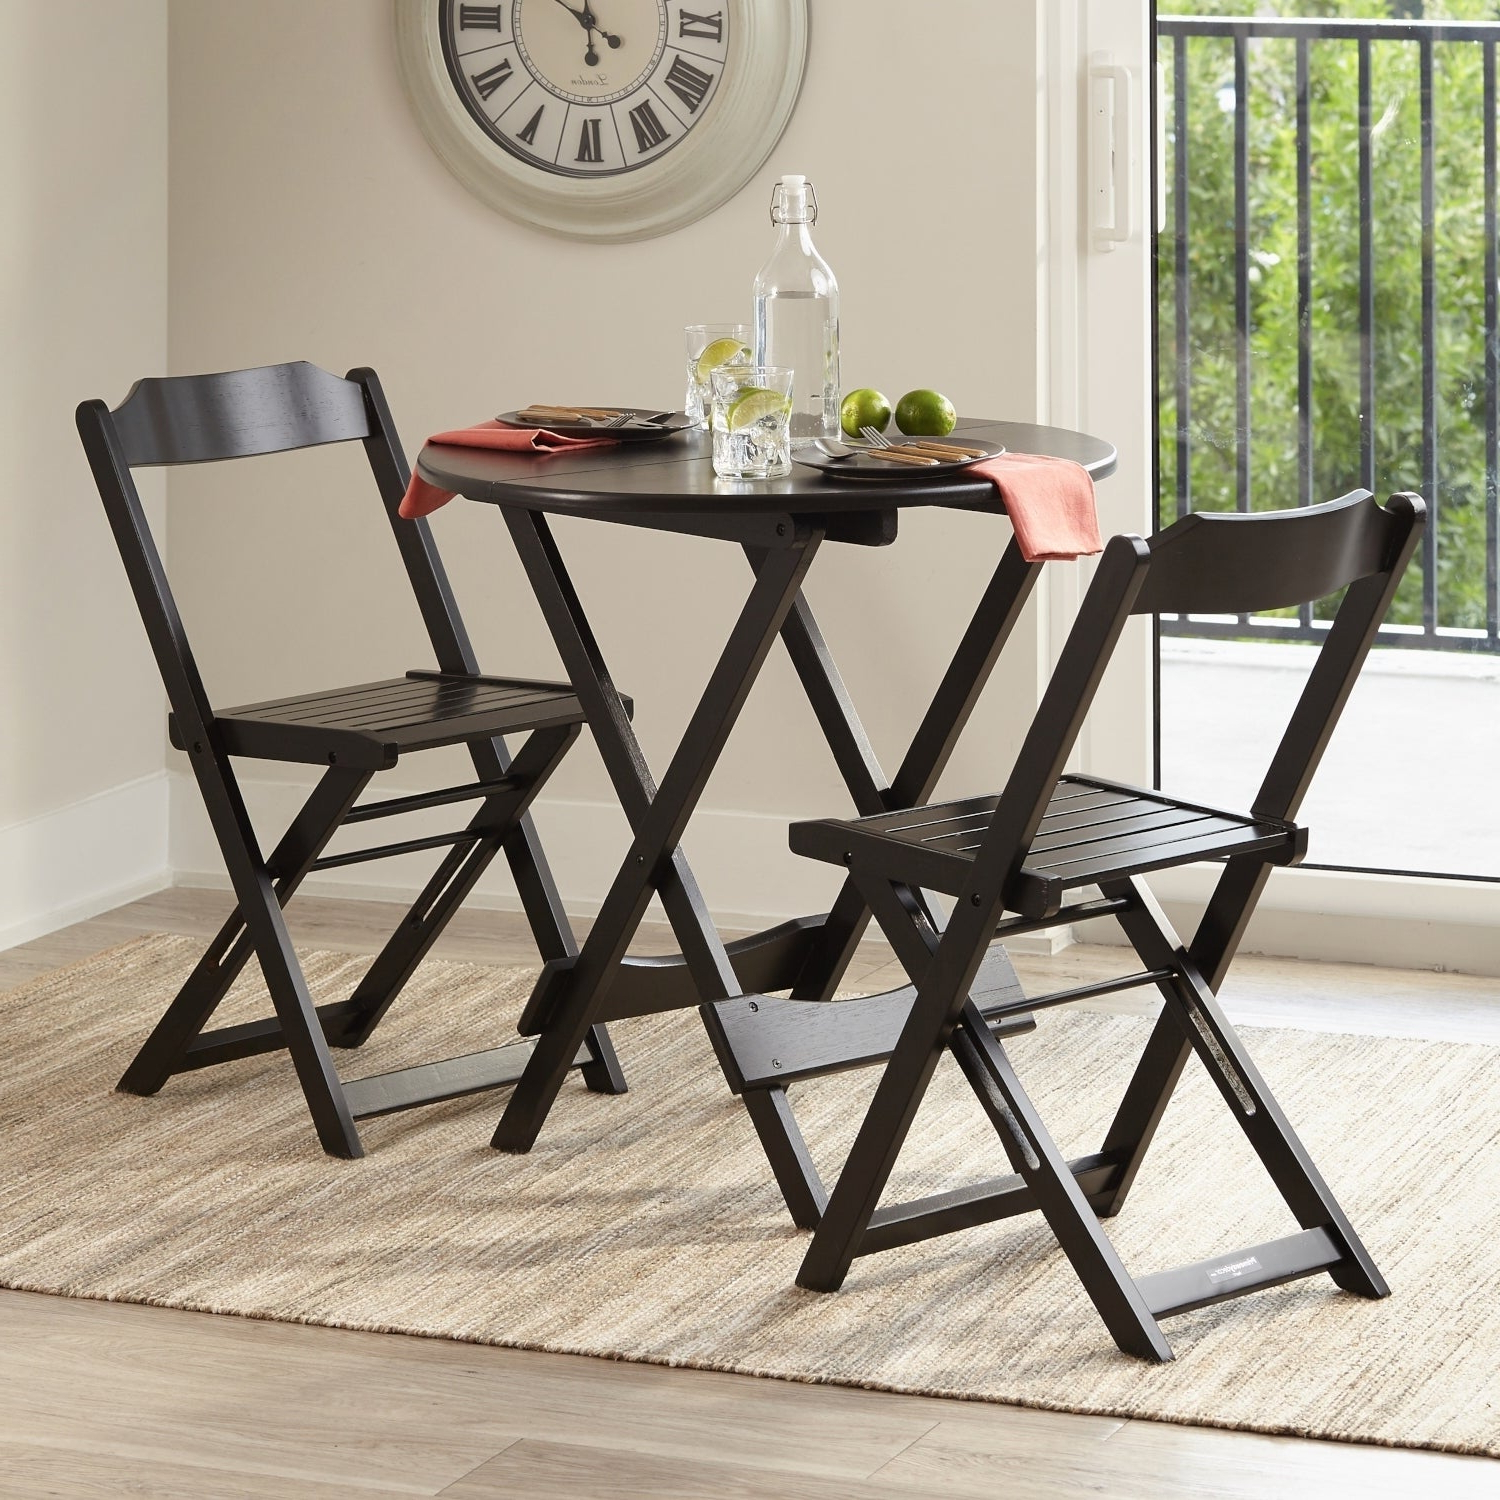 Most Recent Lonon 3 Piece Dining Sets Pertaining To Shop Bistro Set 3 Piece Outdoor Dining Set Round Table Folding (View 19 of 25)